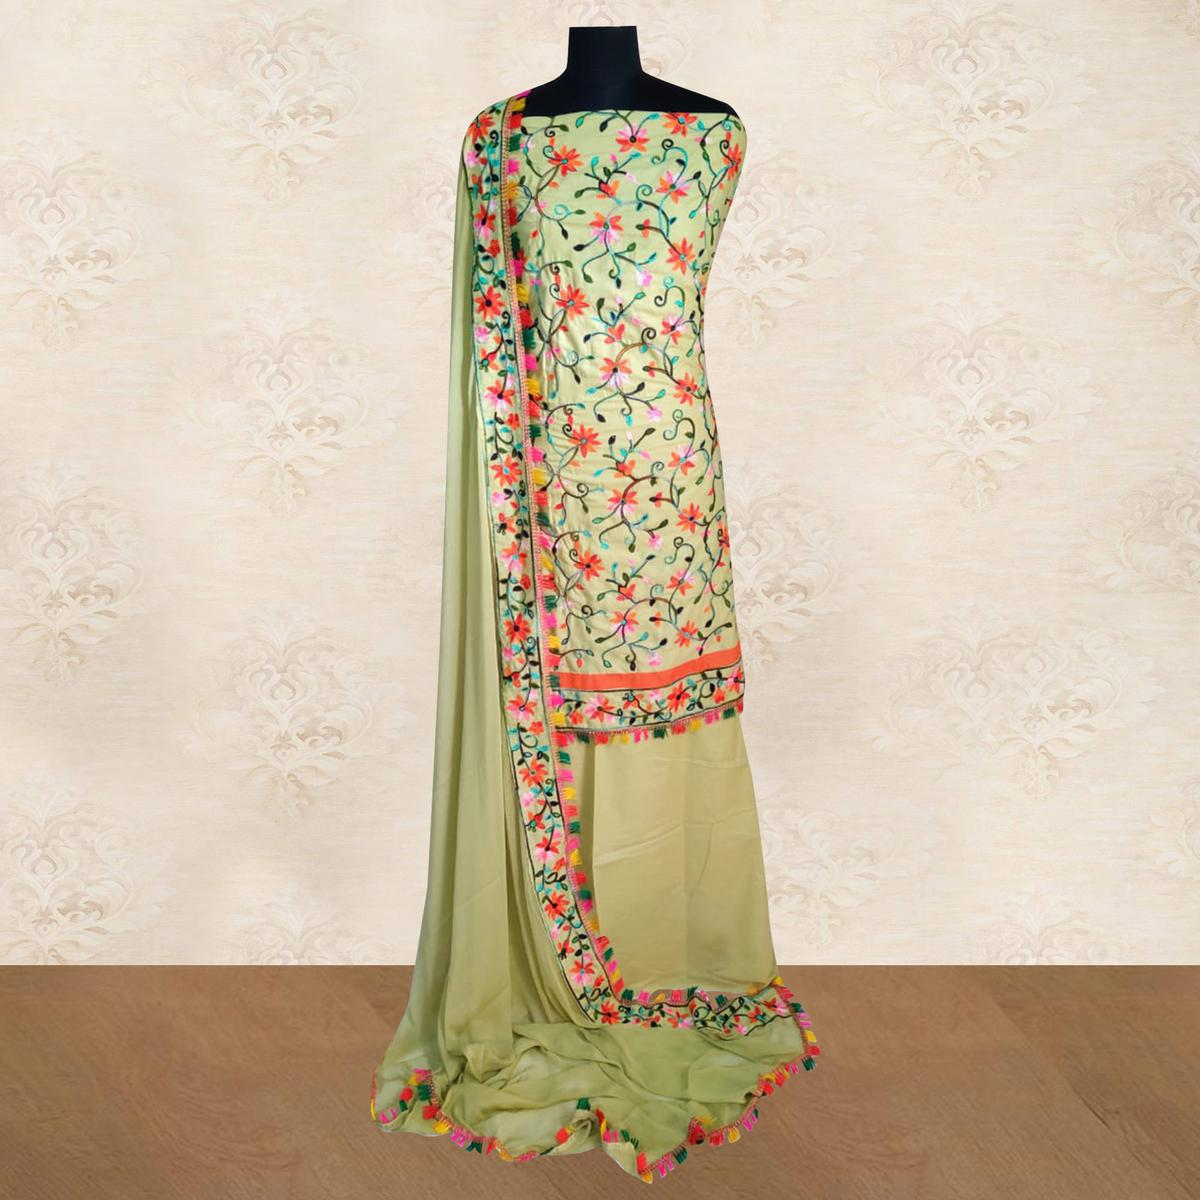 IRIS - Green Colored Casual Chainstitch Embroidered Work Cotton Dress Material